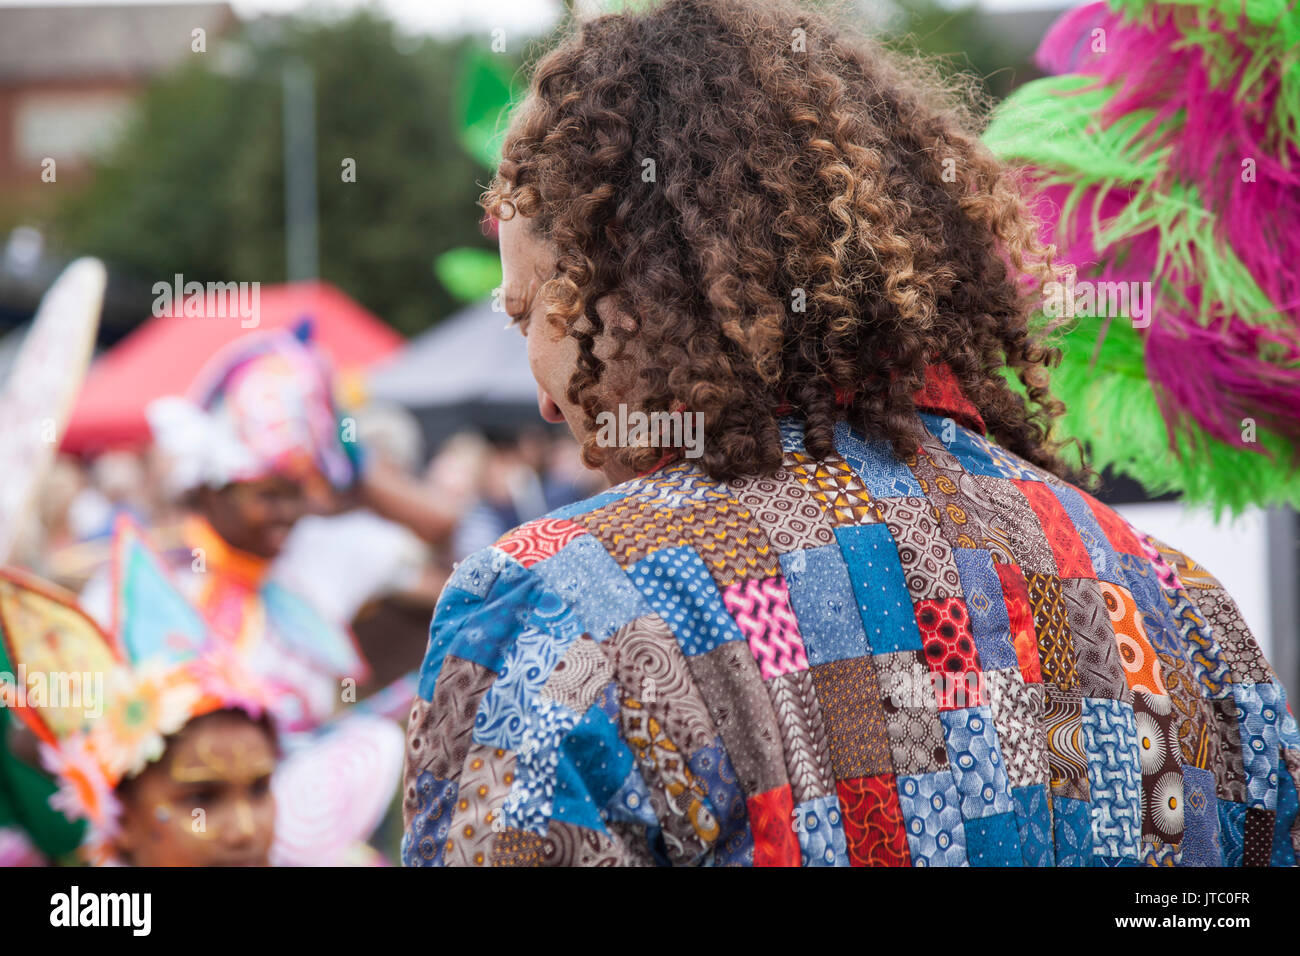 Show compere with dreadlock hair and bright coloured jacket entertains the crowd at the Stockton International Riverside Festival parade - Stock Image